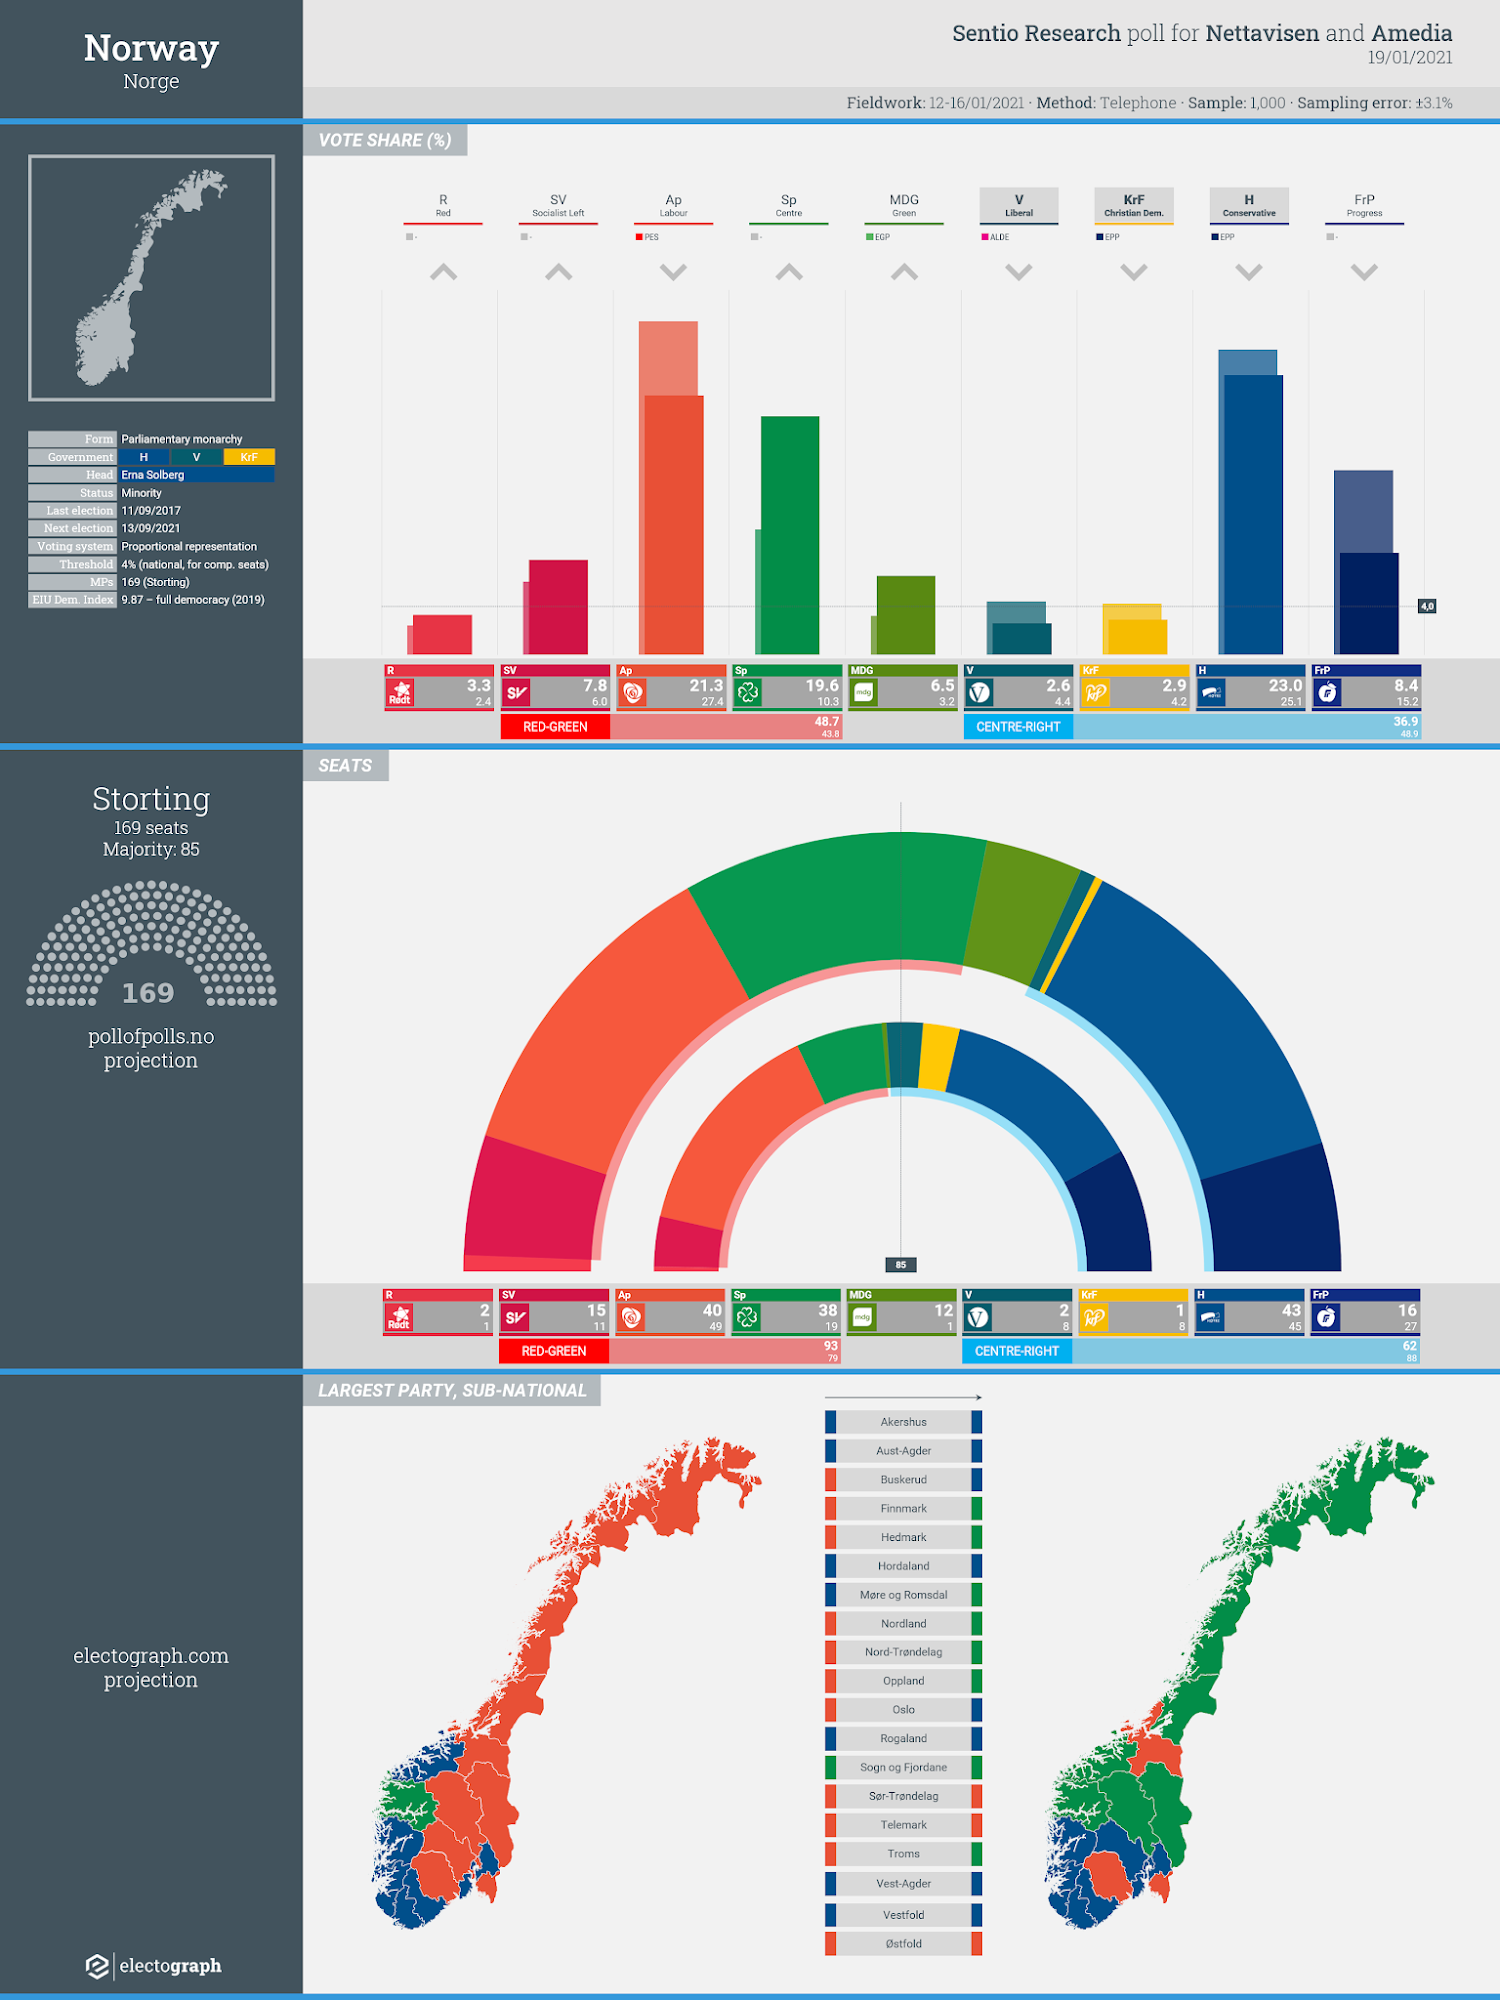 NORWAY: Sentio Research poll chart for Nettavisen and Amedia, 19 January 2021